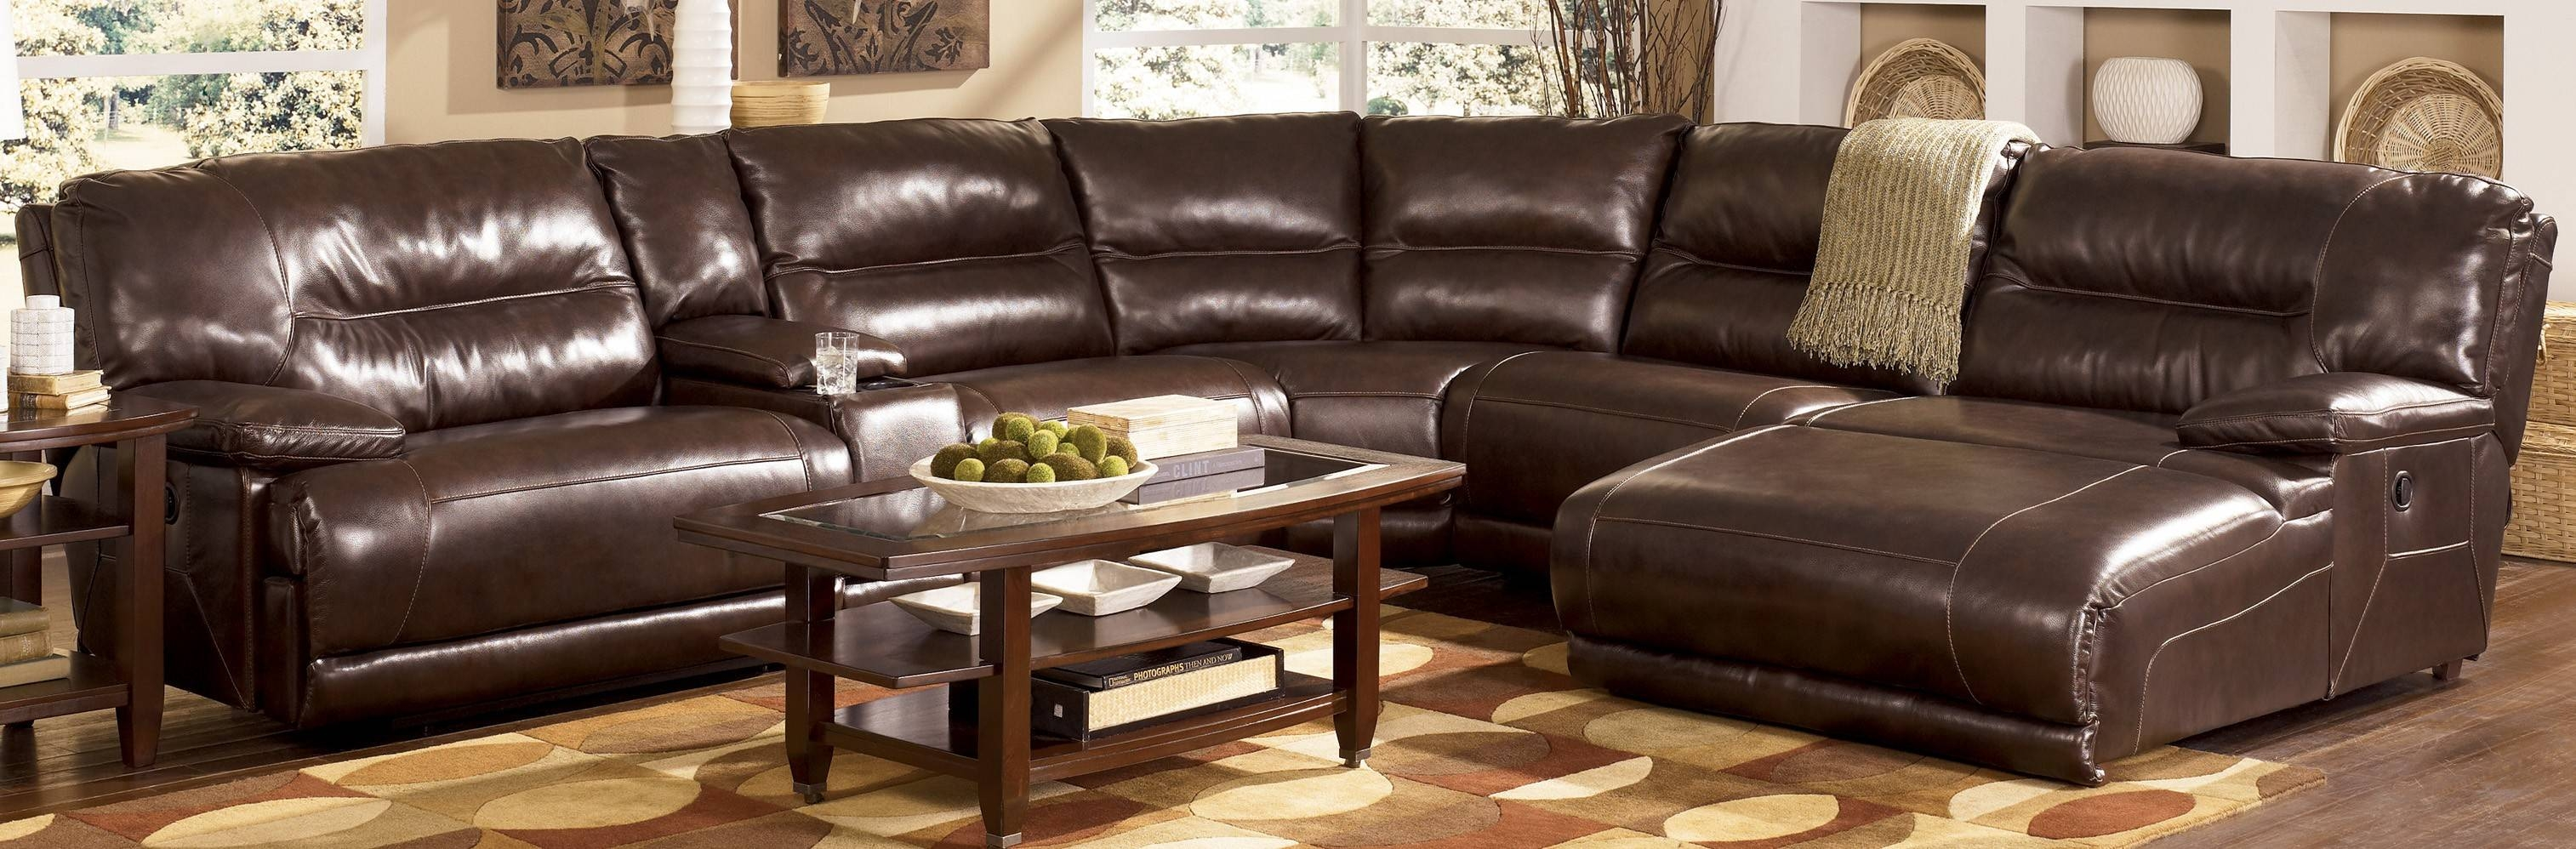 Leather Sectional Sofas With Recliners And Chaise - Cleanupflorida within Individual Piece Sectional Sofas (Image 12 of 25)